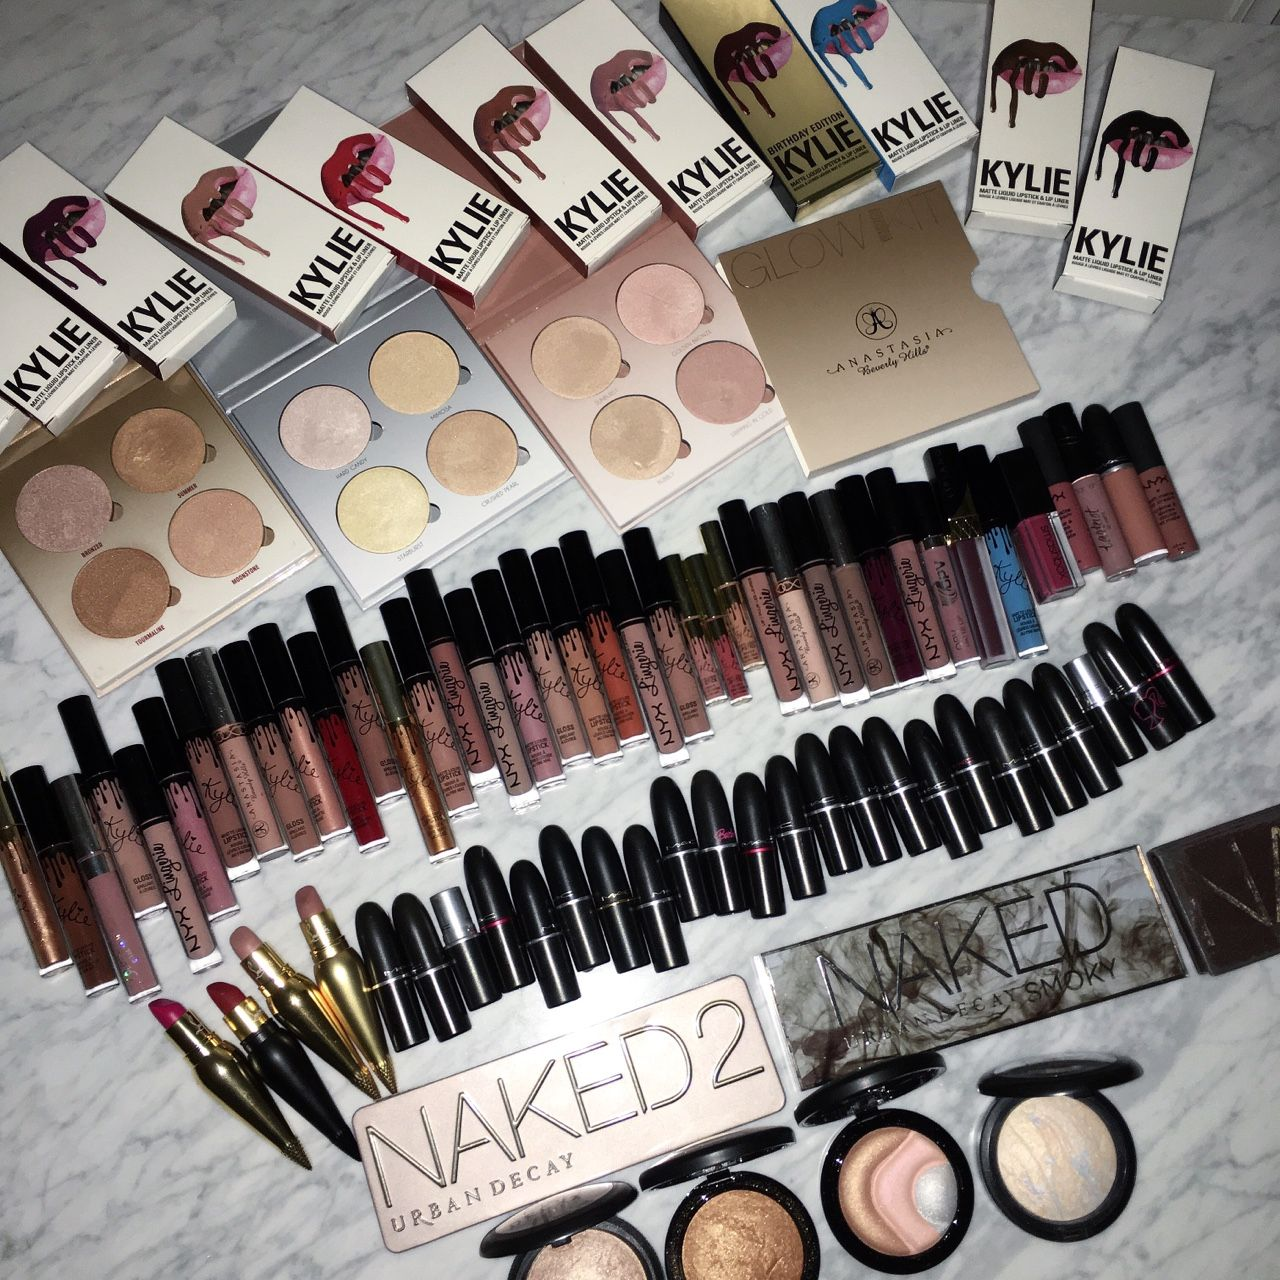 slave2beauty on instagram Makeup collection goals